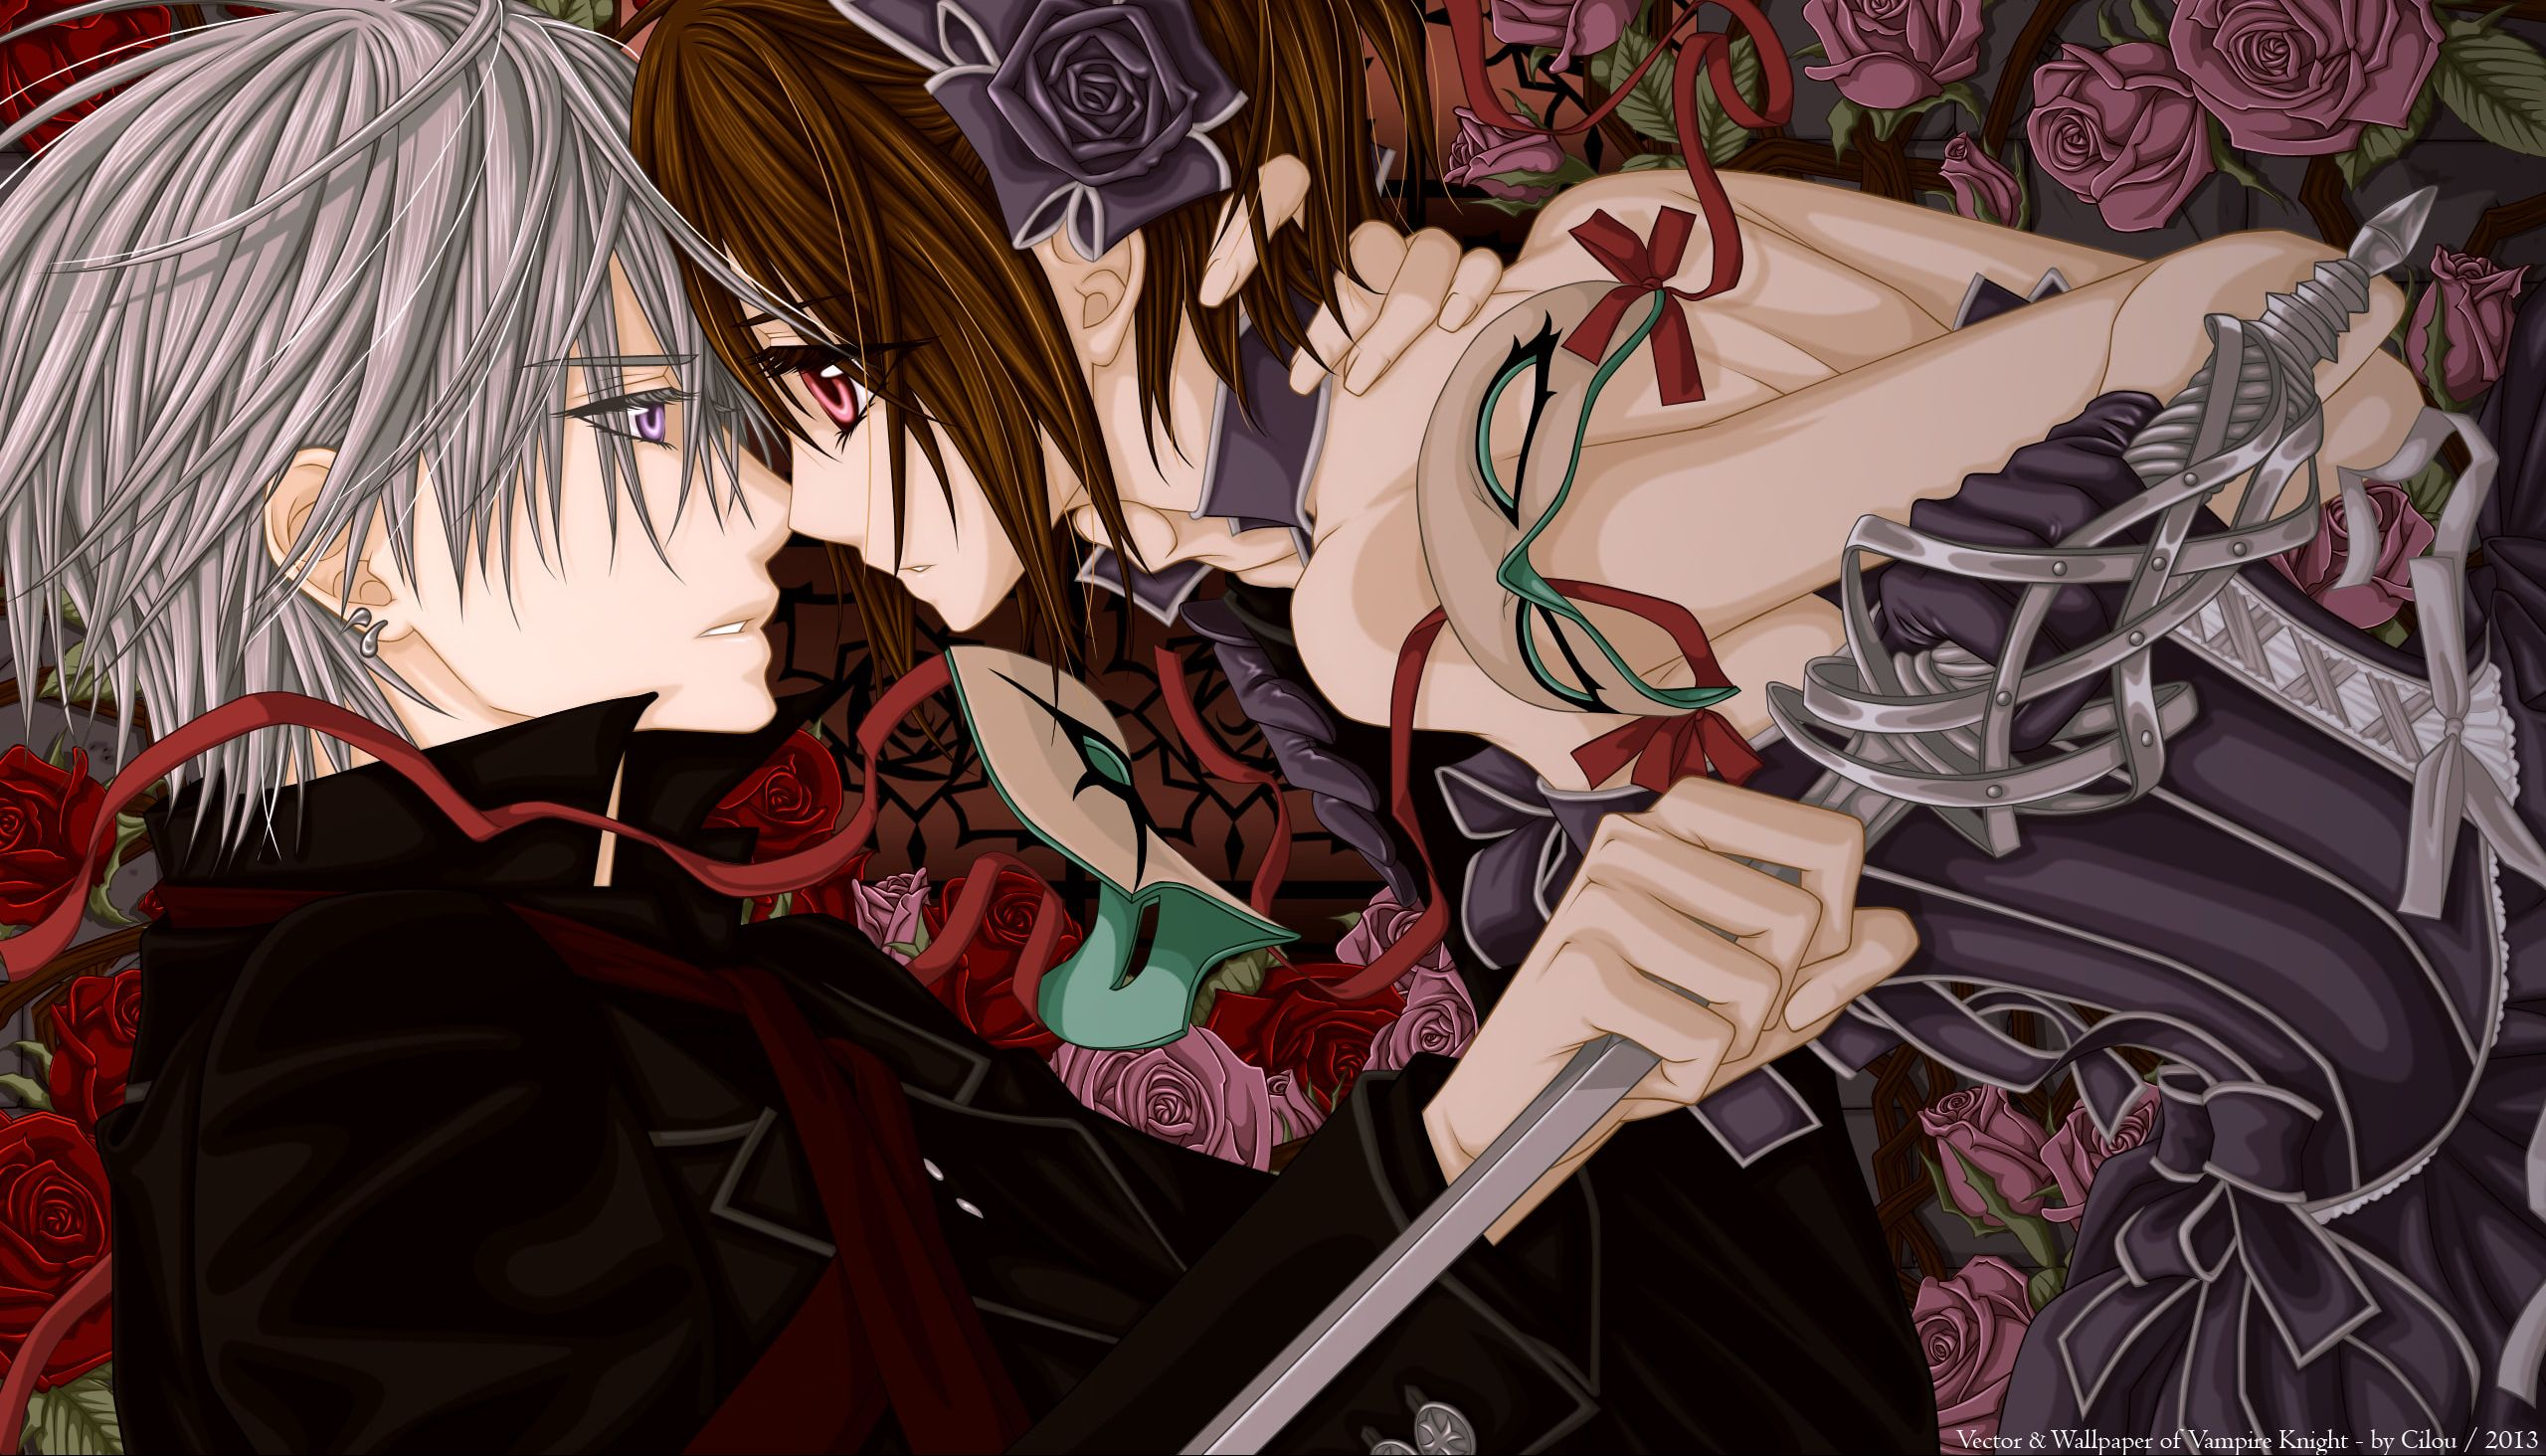 FANFICTION STORIES - Vampire Knight Fanfiction